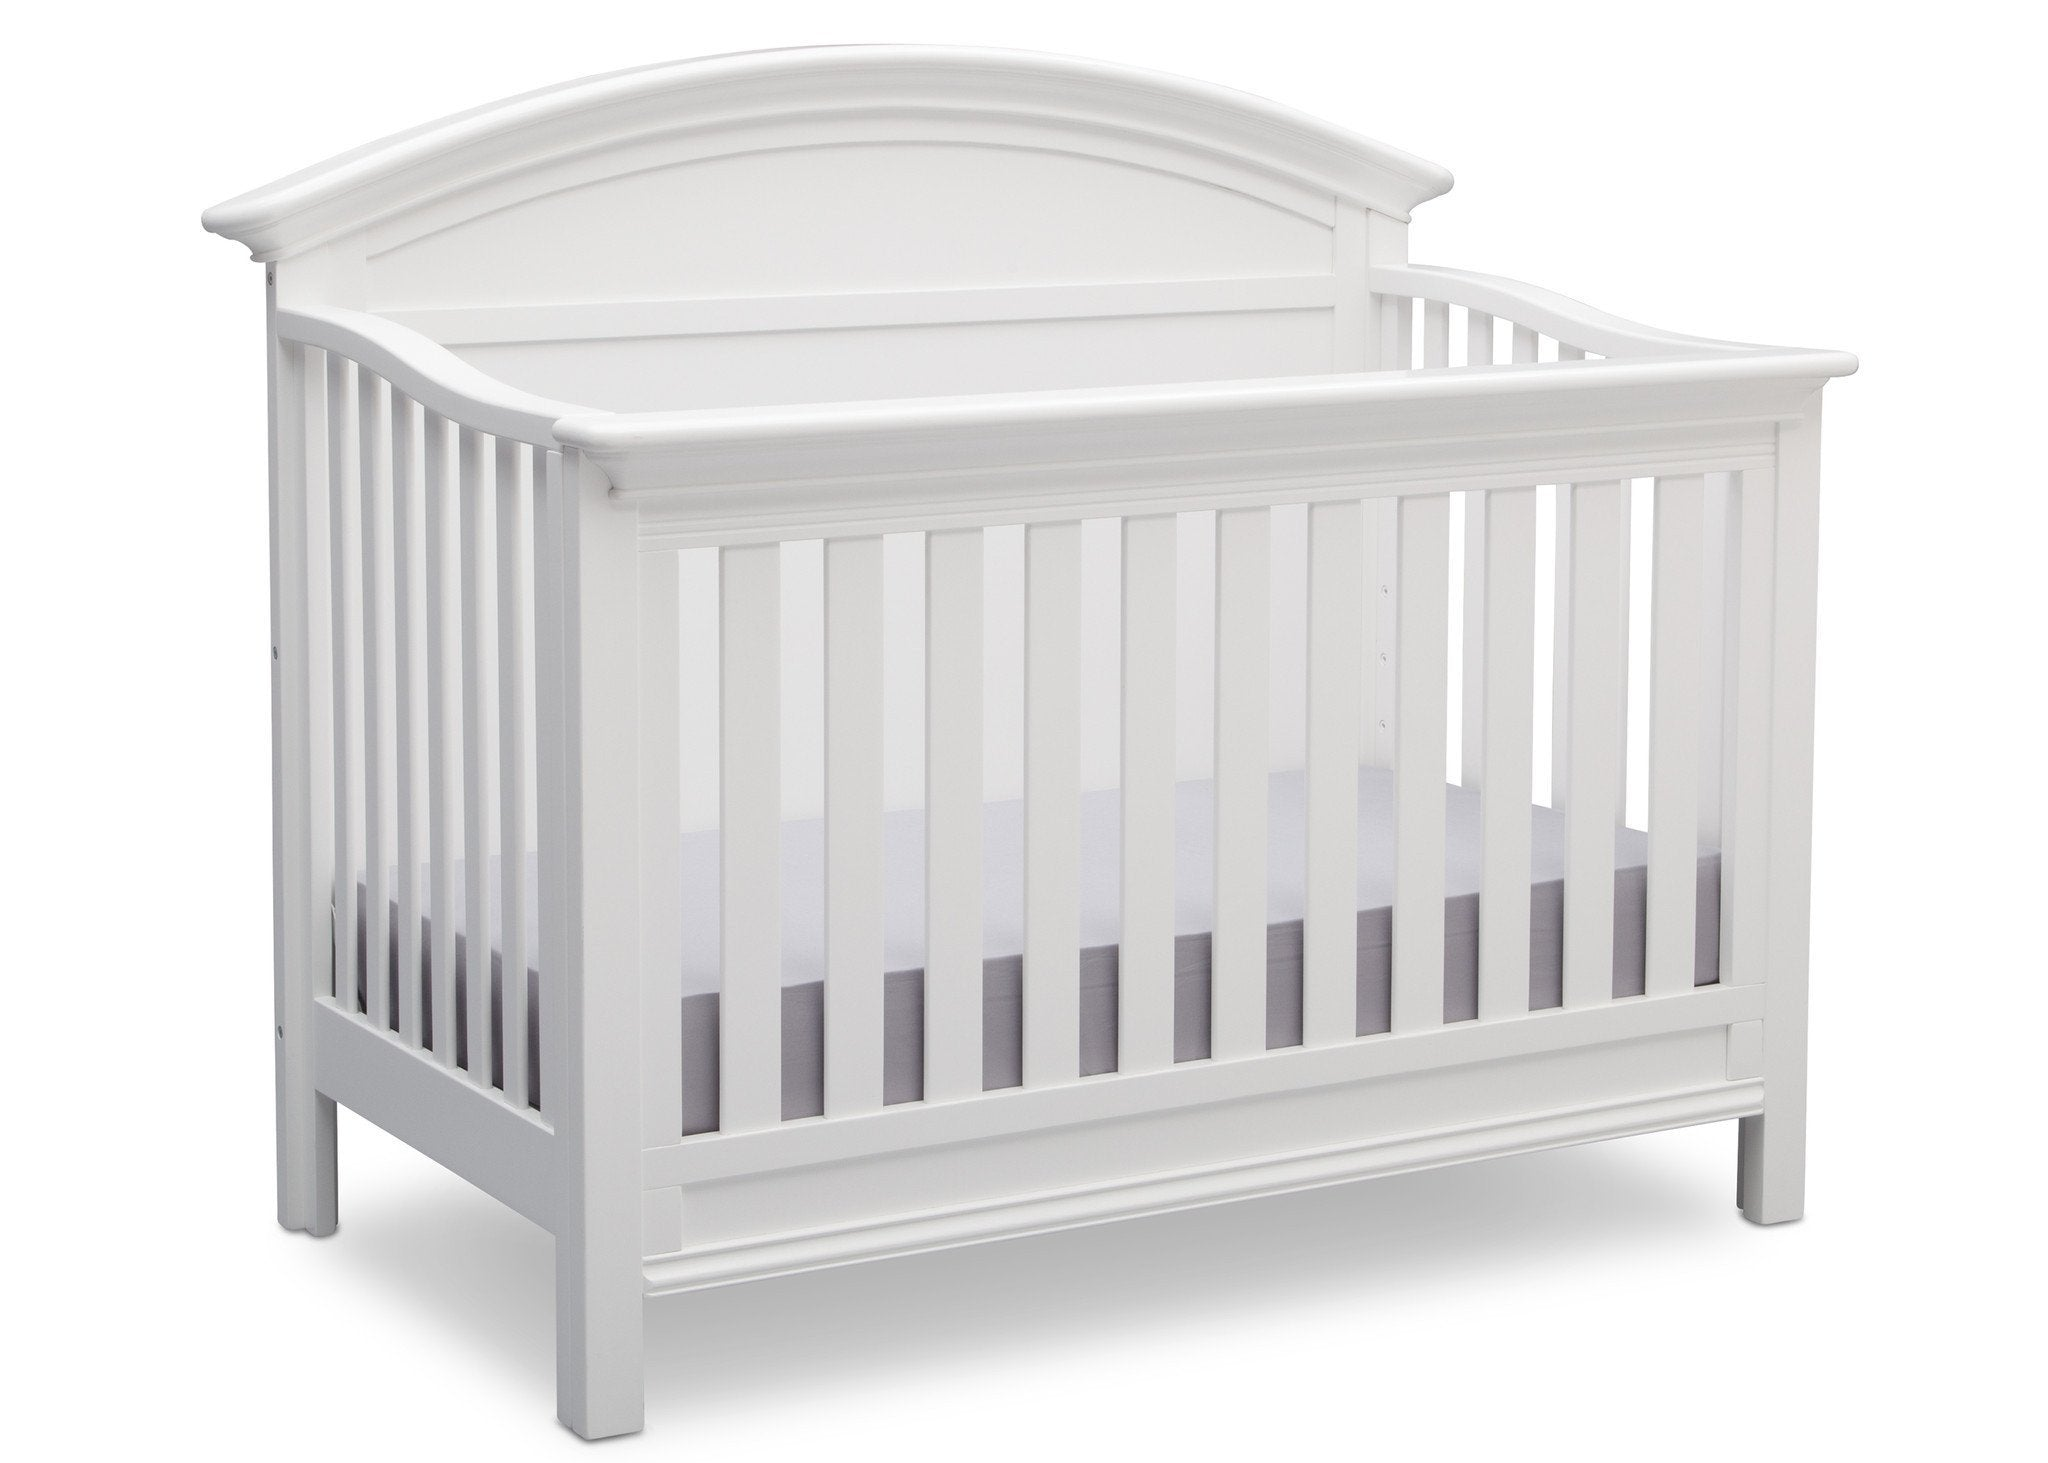 Serta Bianca (130) Adelaide 4-in-1 Crib, Side View with Toddler Bed Conversion b4b